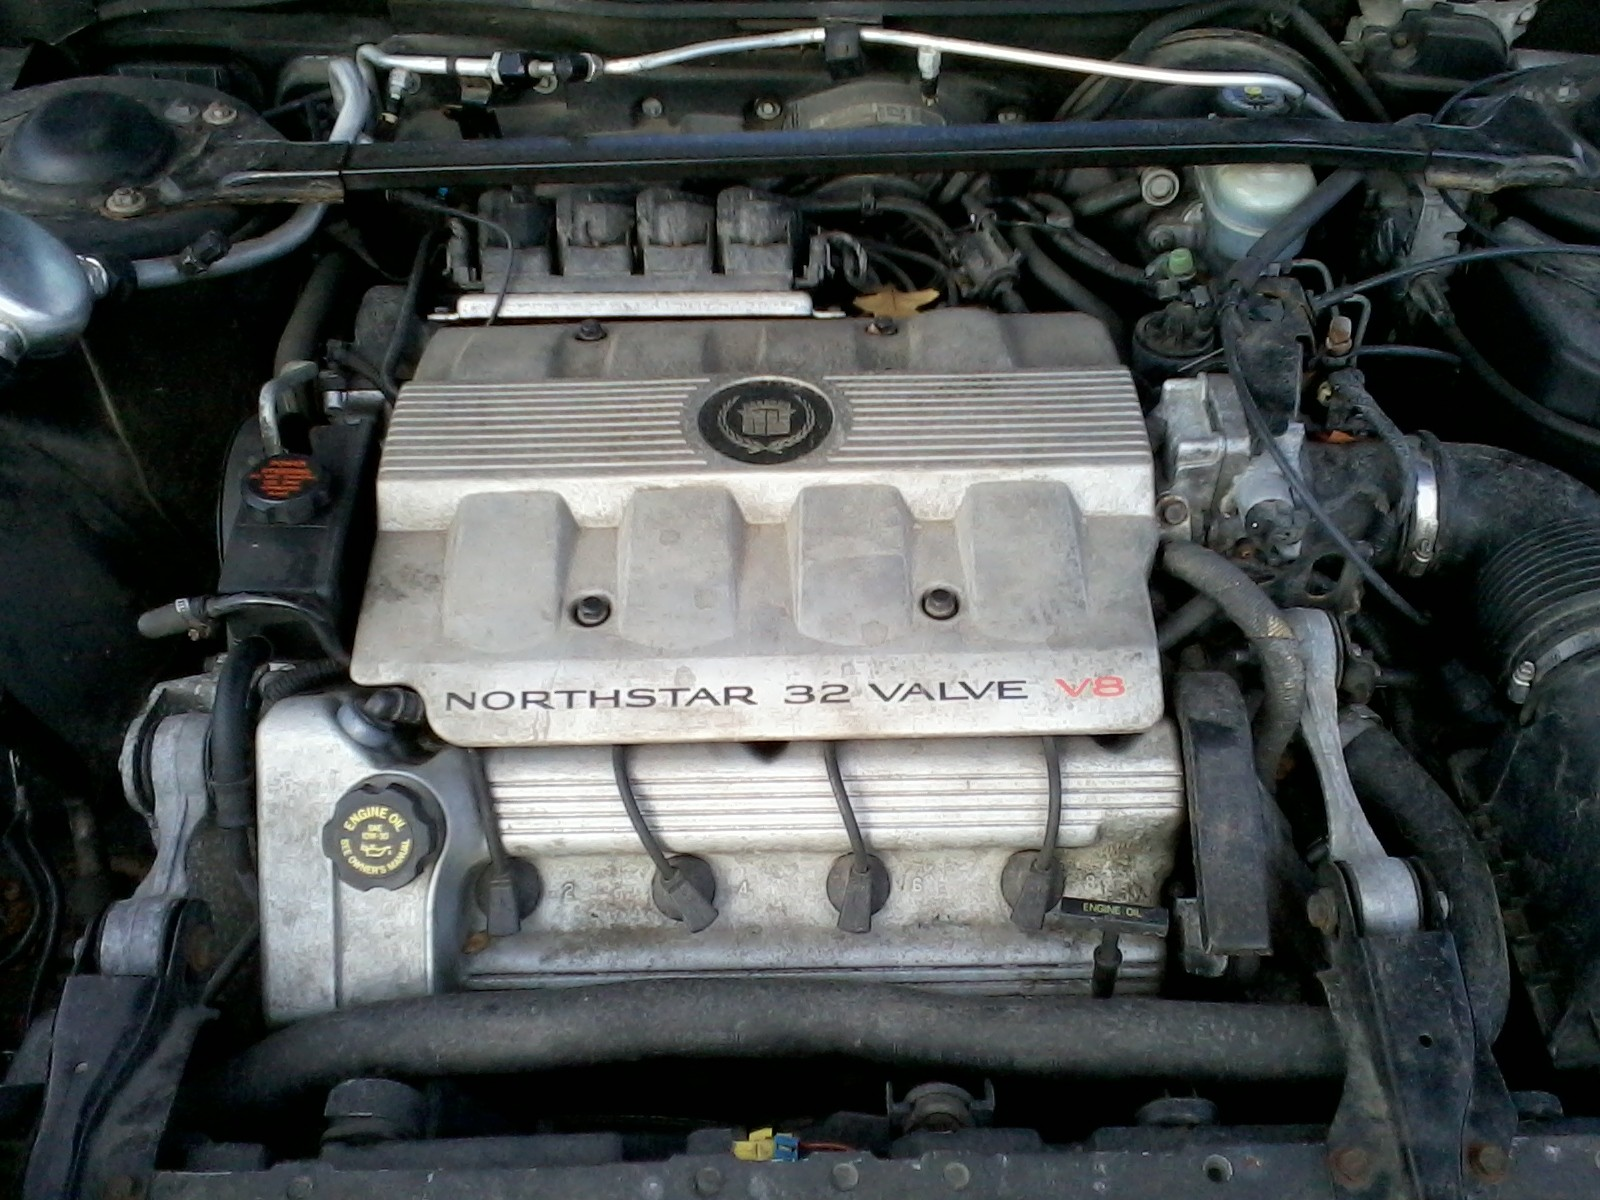 2000 Cadillac Deville Engine Diagram 2000 Cadillac Eldorado Esc Coupe 4 6l V8 Auto Of 2000 Cadillac Deville Engine Diagram